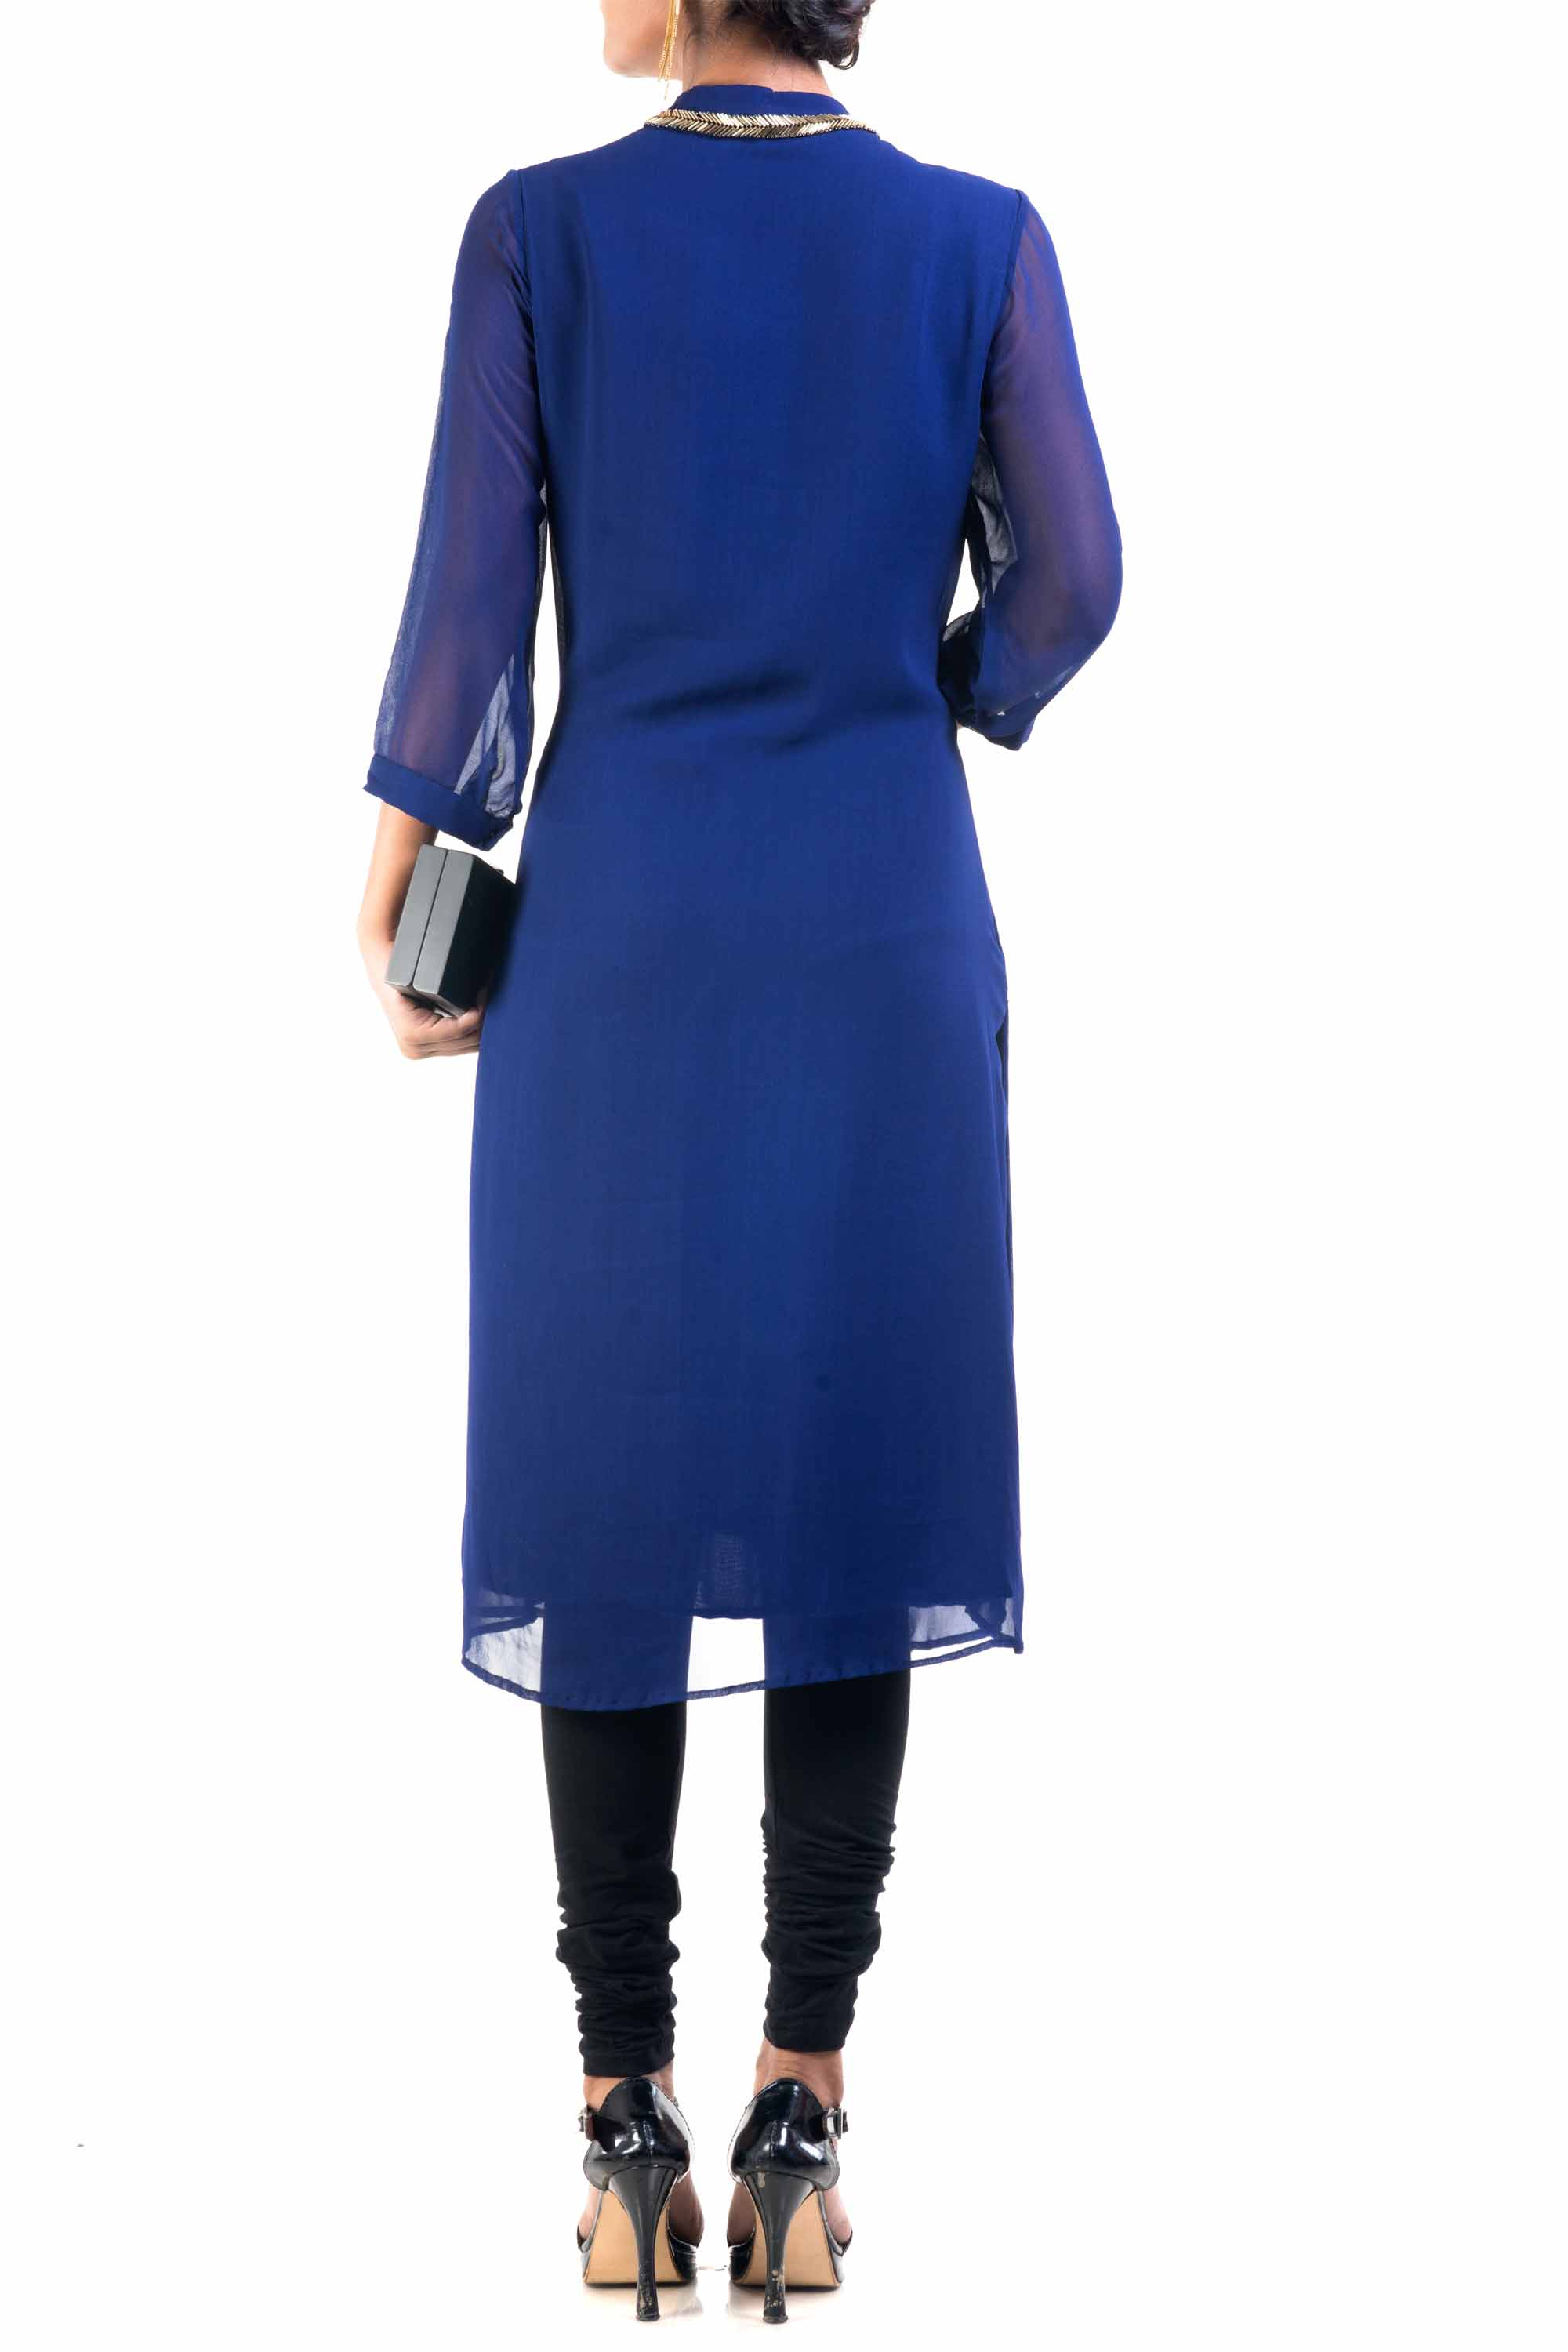 Classic Blue And Gold Pipe Tunic Back